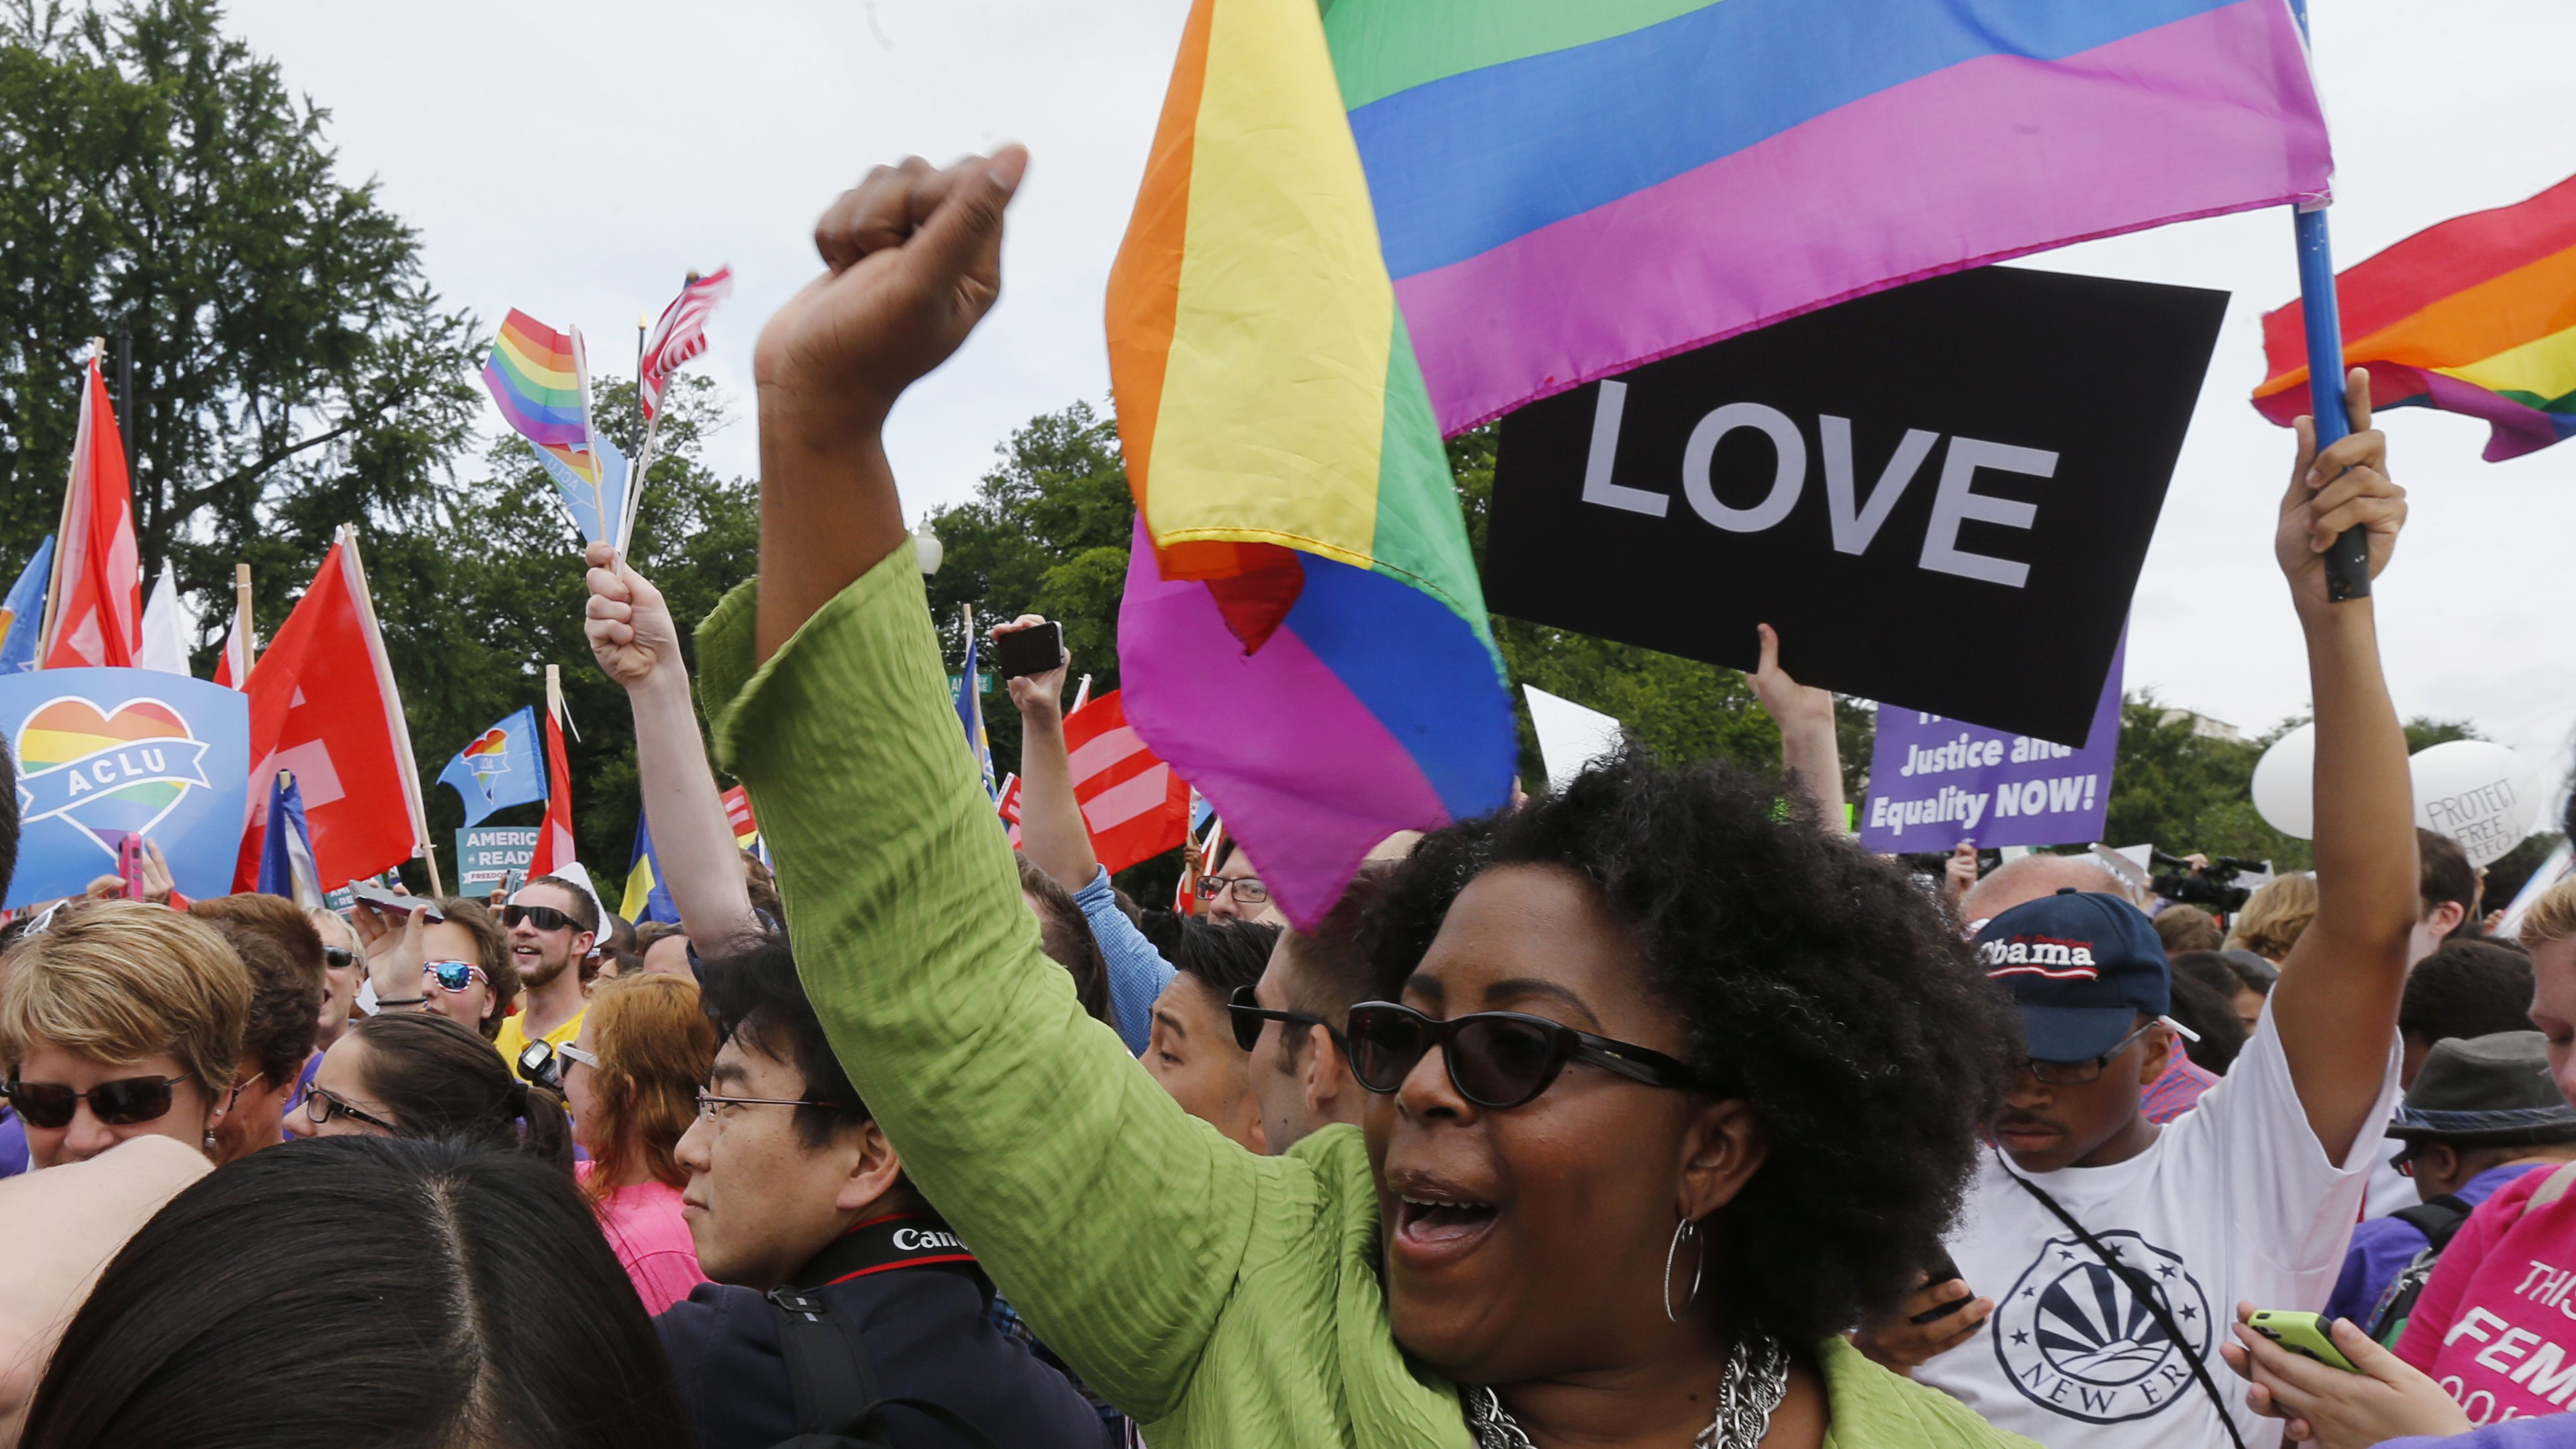 Gay rights supporters celebrate outside the U.S. Supreme Court building